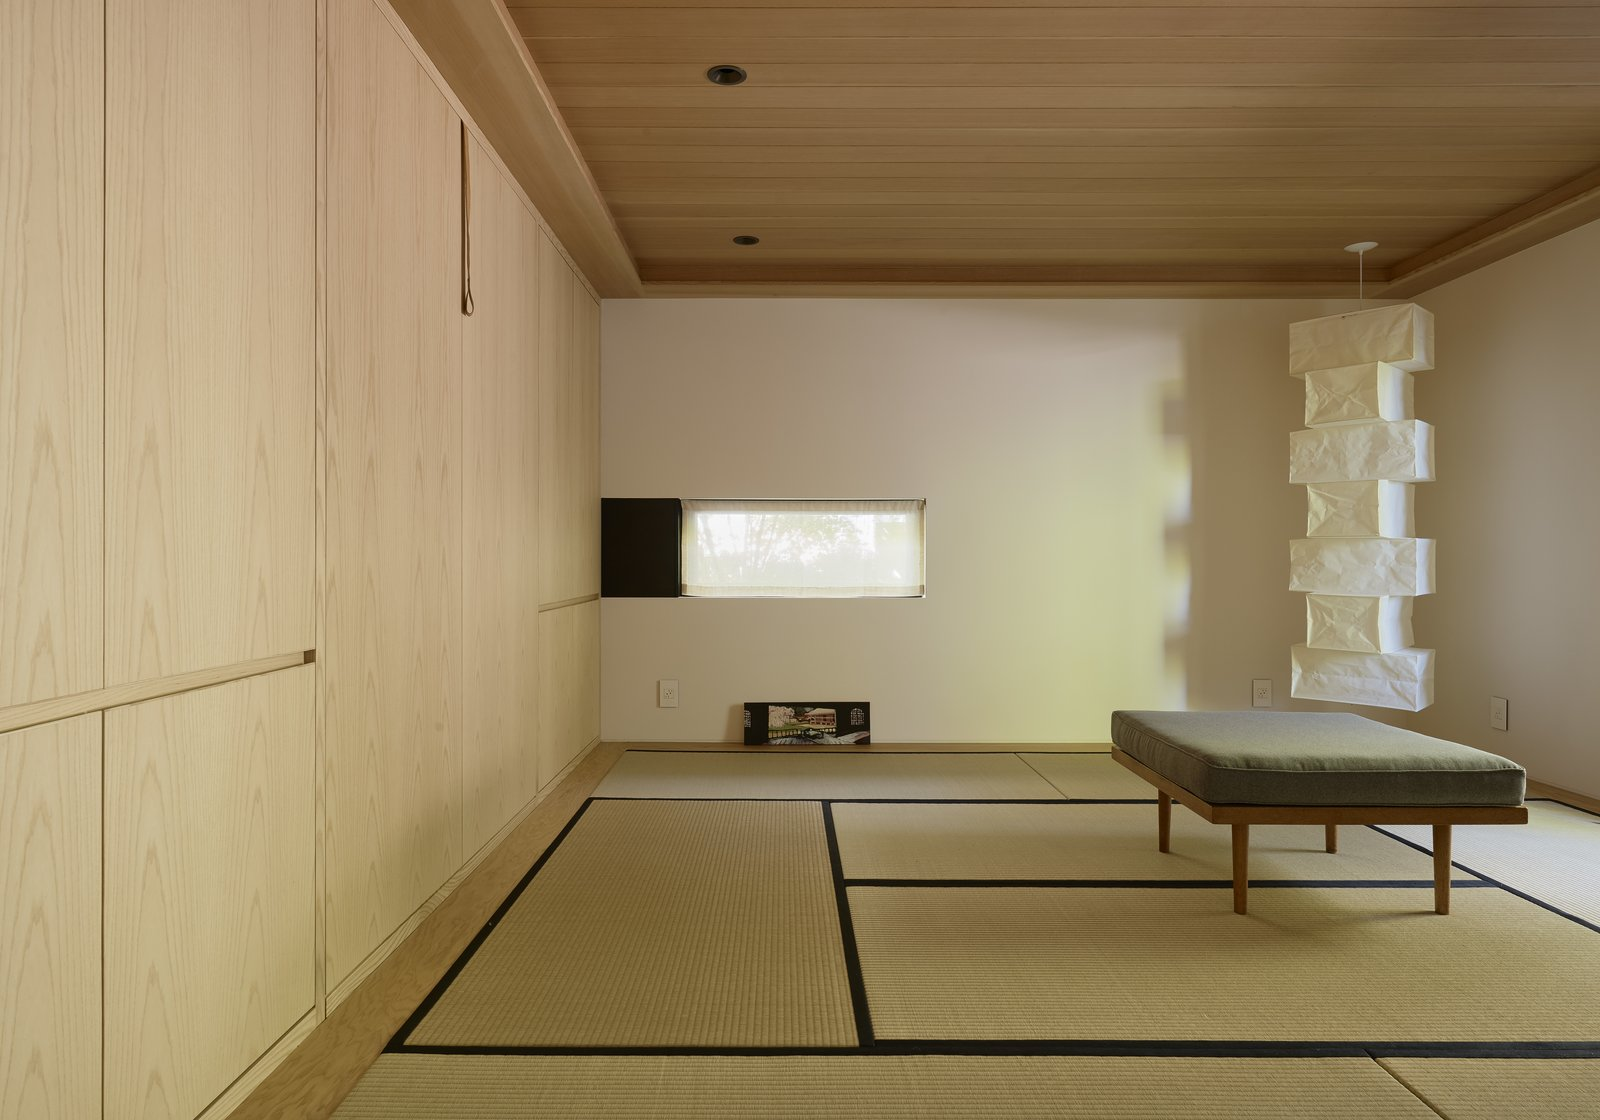 Shed & Studio and Sun Room Room Type The new interior includes a meditation room with an Isamu Noguchi lamp, flooring made of tatami mats, and a Murphy bed for visitors.  Photo 10 of 13 in You'd Never Guess This Japanese-Style Home in Tiburon Is a Kit House